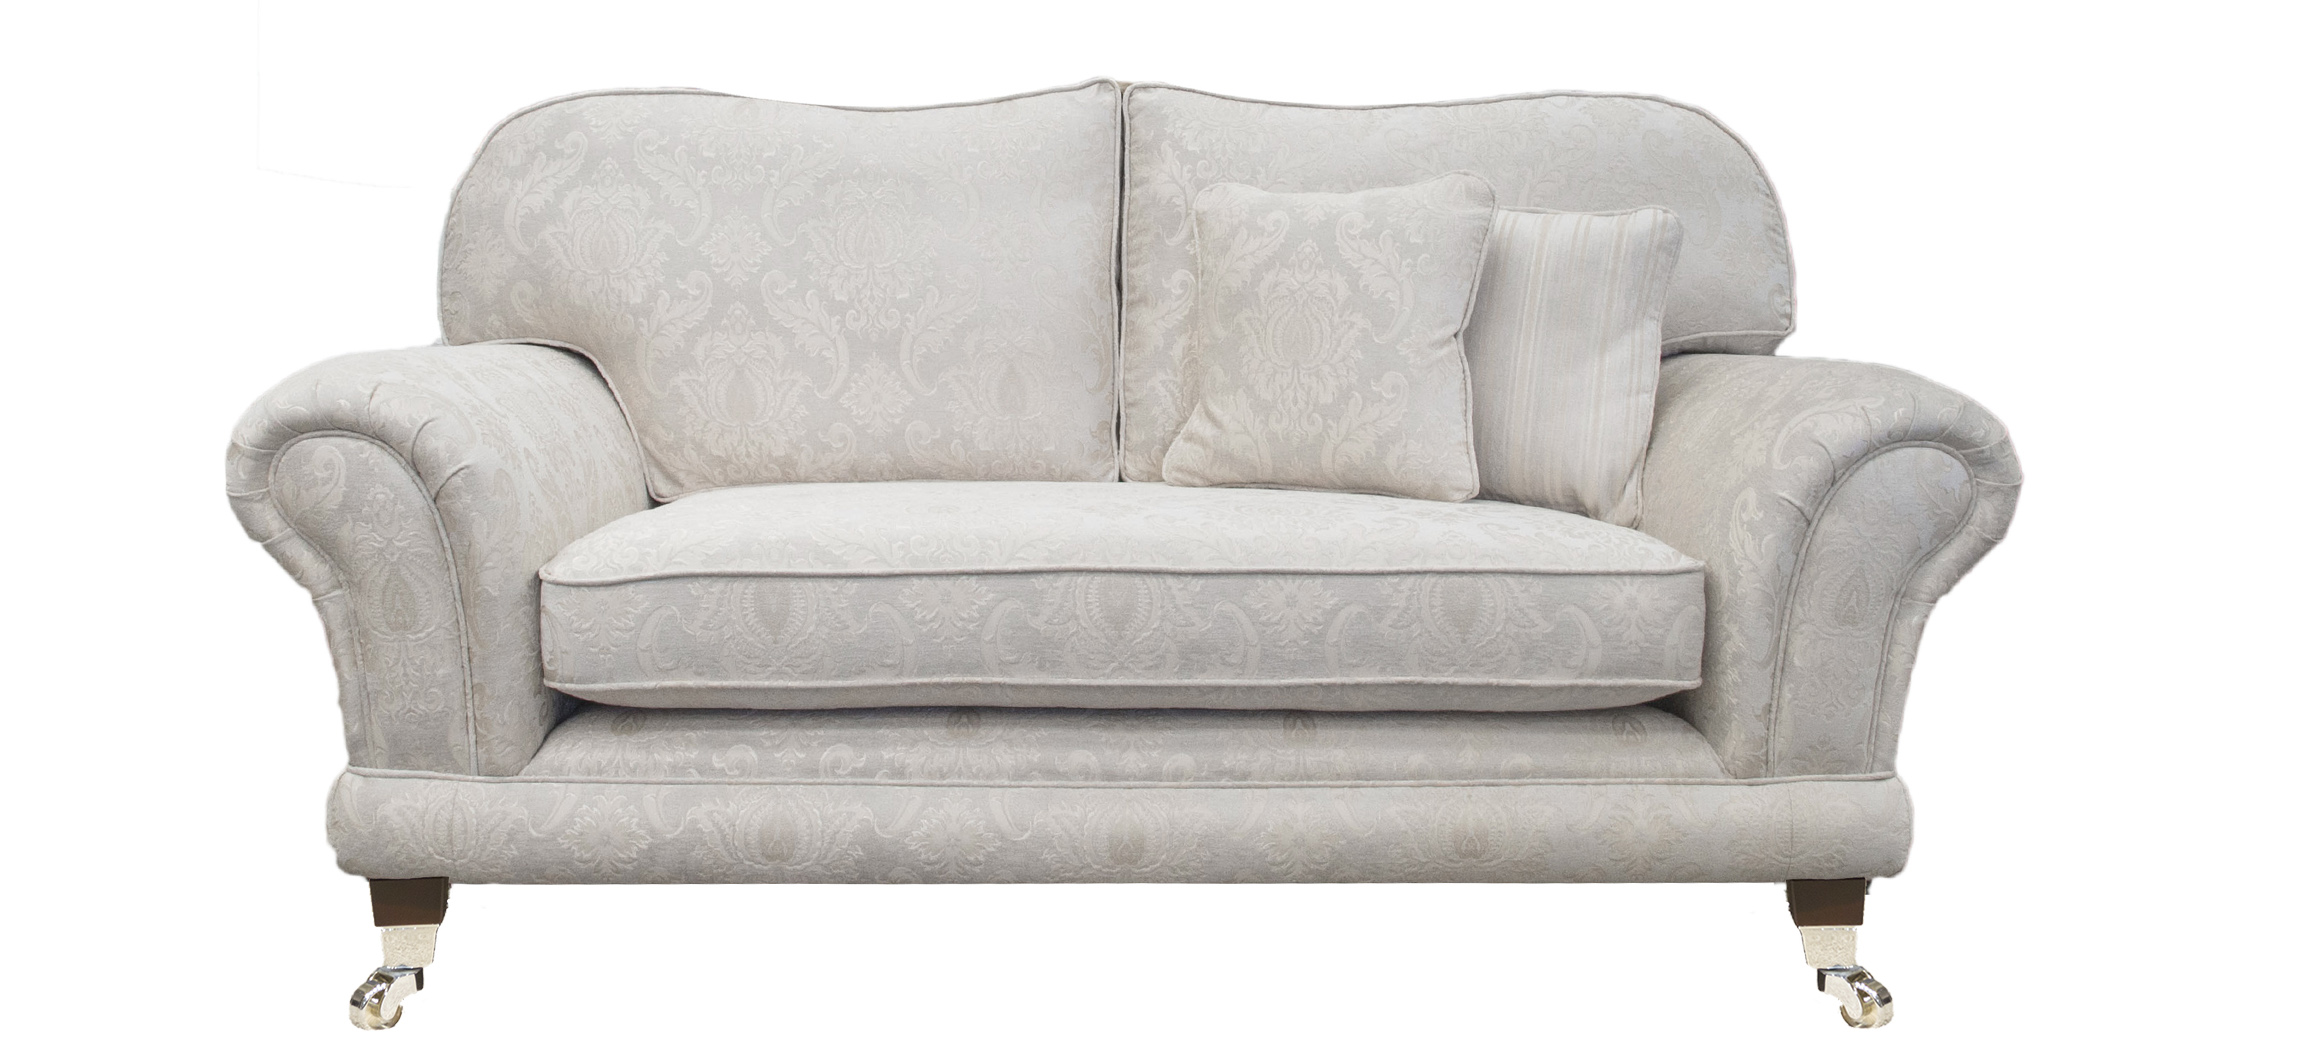 Alexandra Small Sofa in Tolstoy Pattern Snow Platinum Collection Fabric